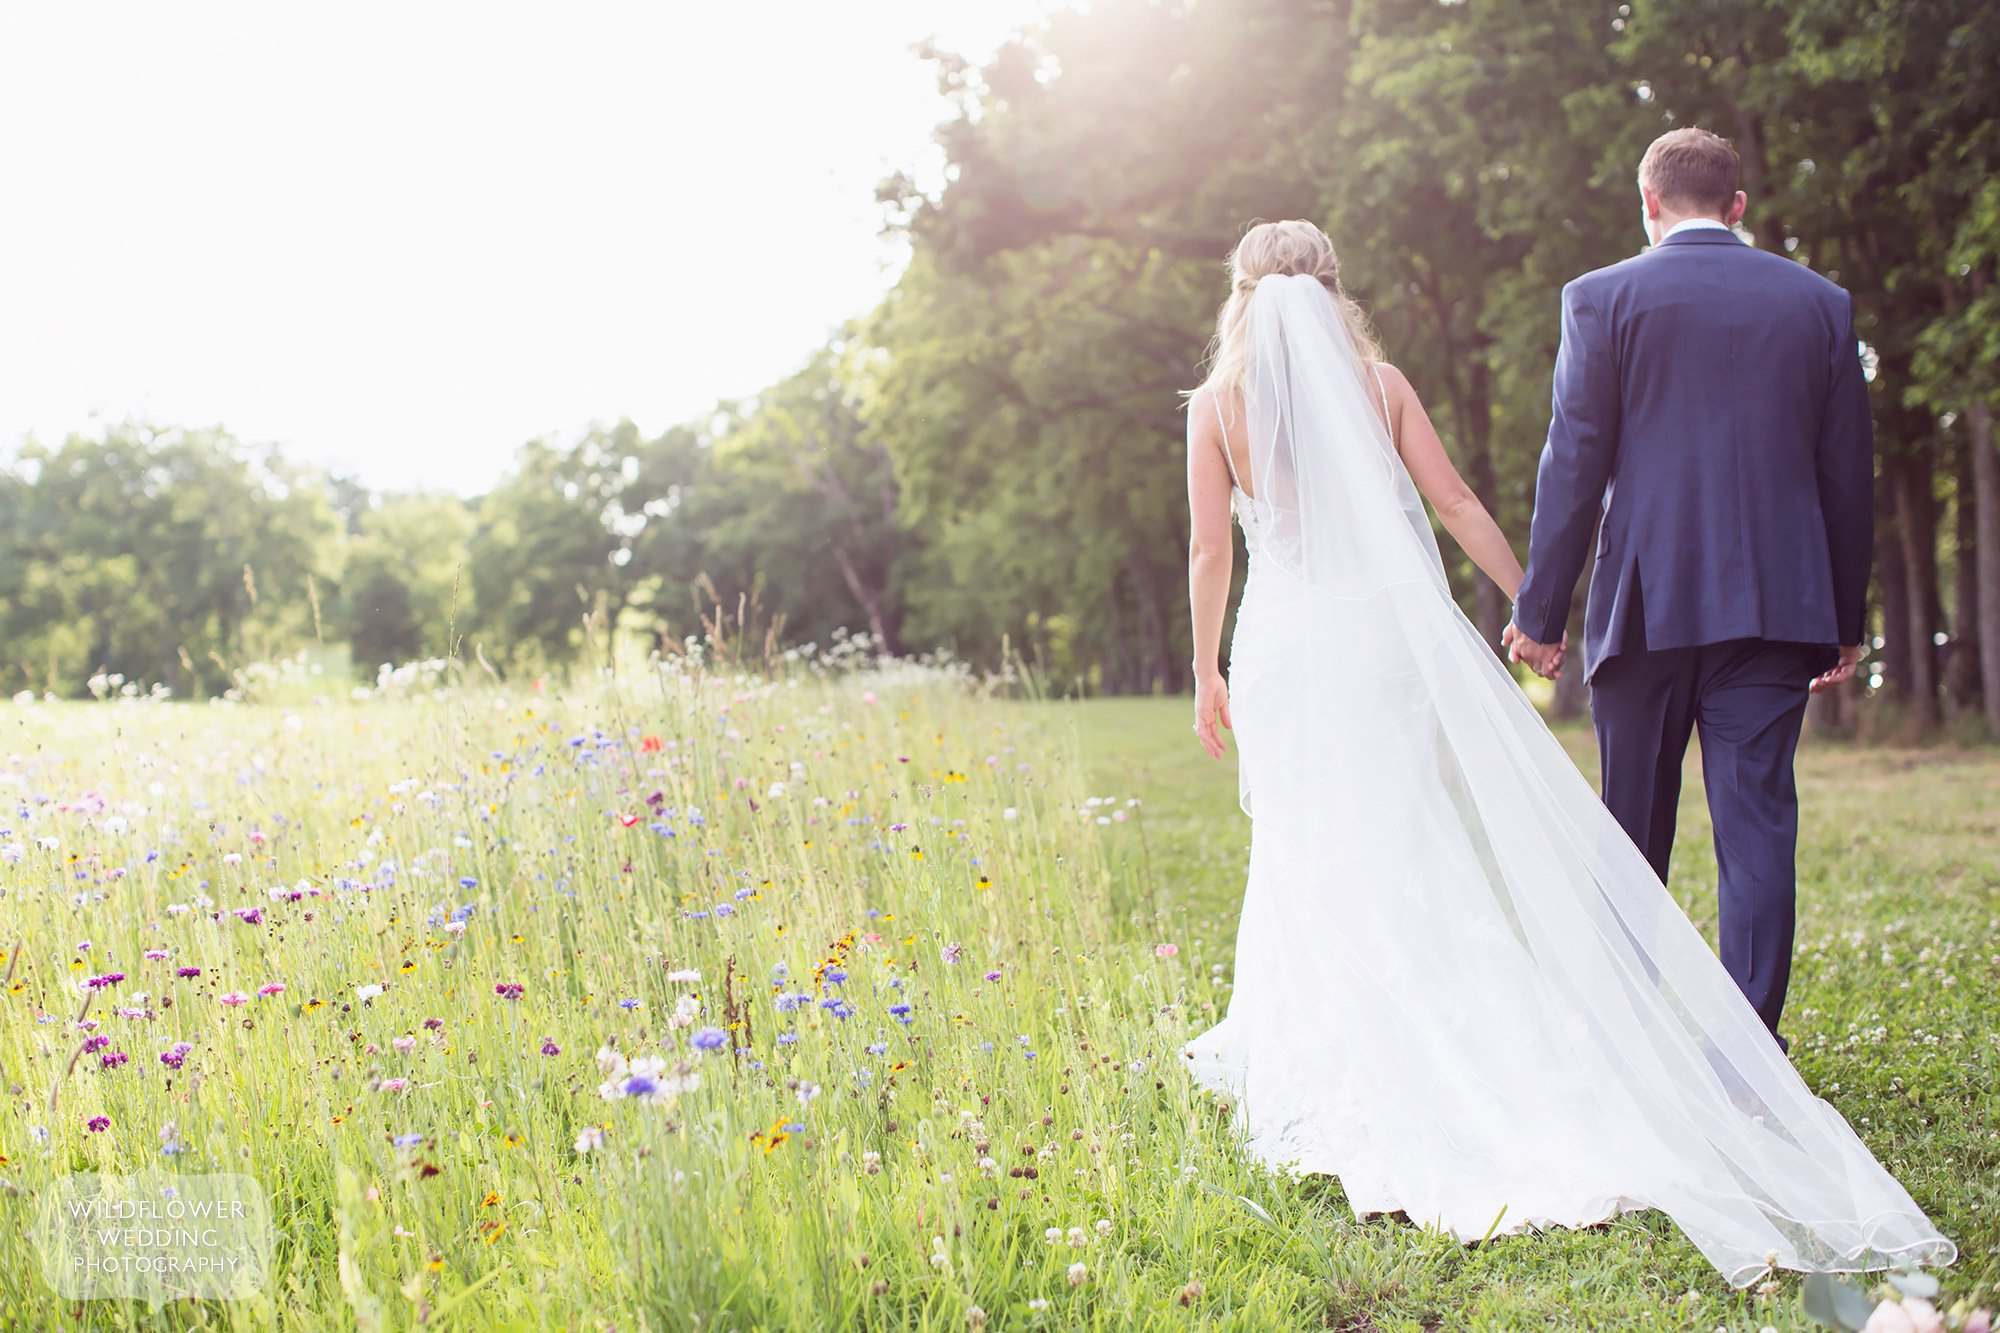 Romantic ethereal wedding photo of the bride and groom walking through a field of wildflowers at Kempker's Back 40 barn wedding venue.